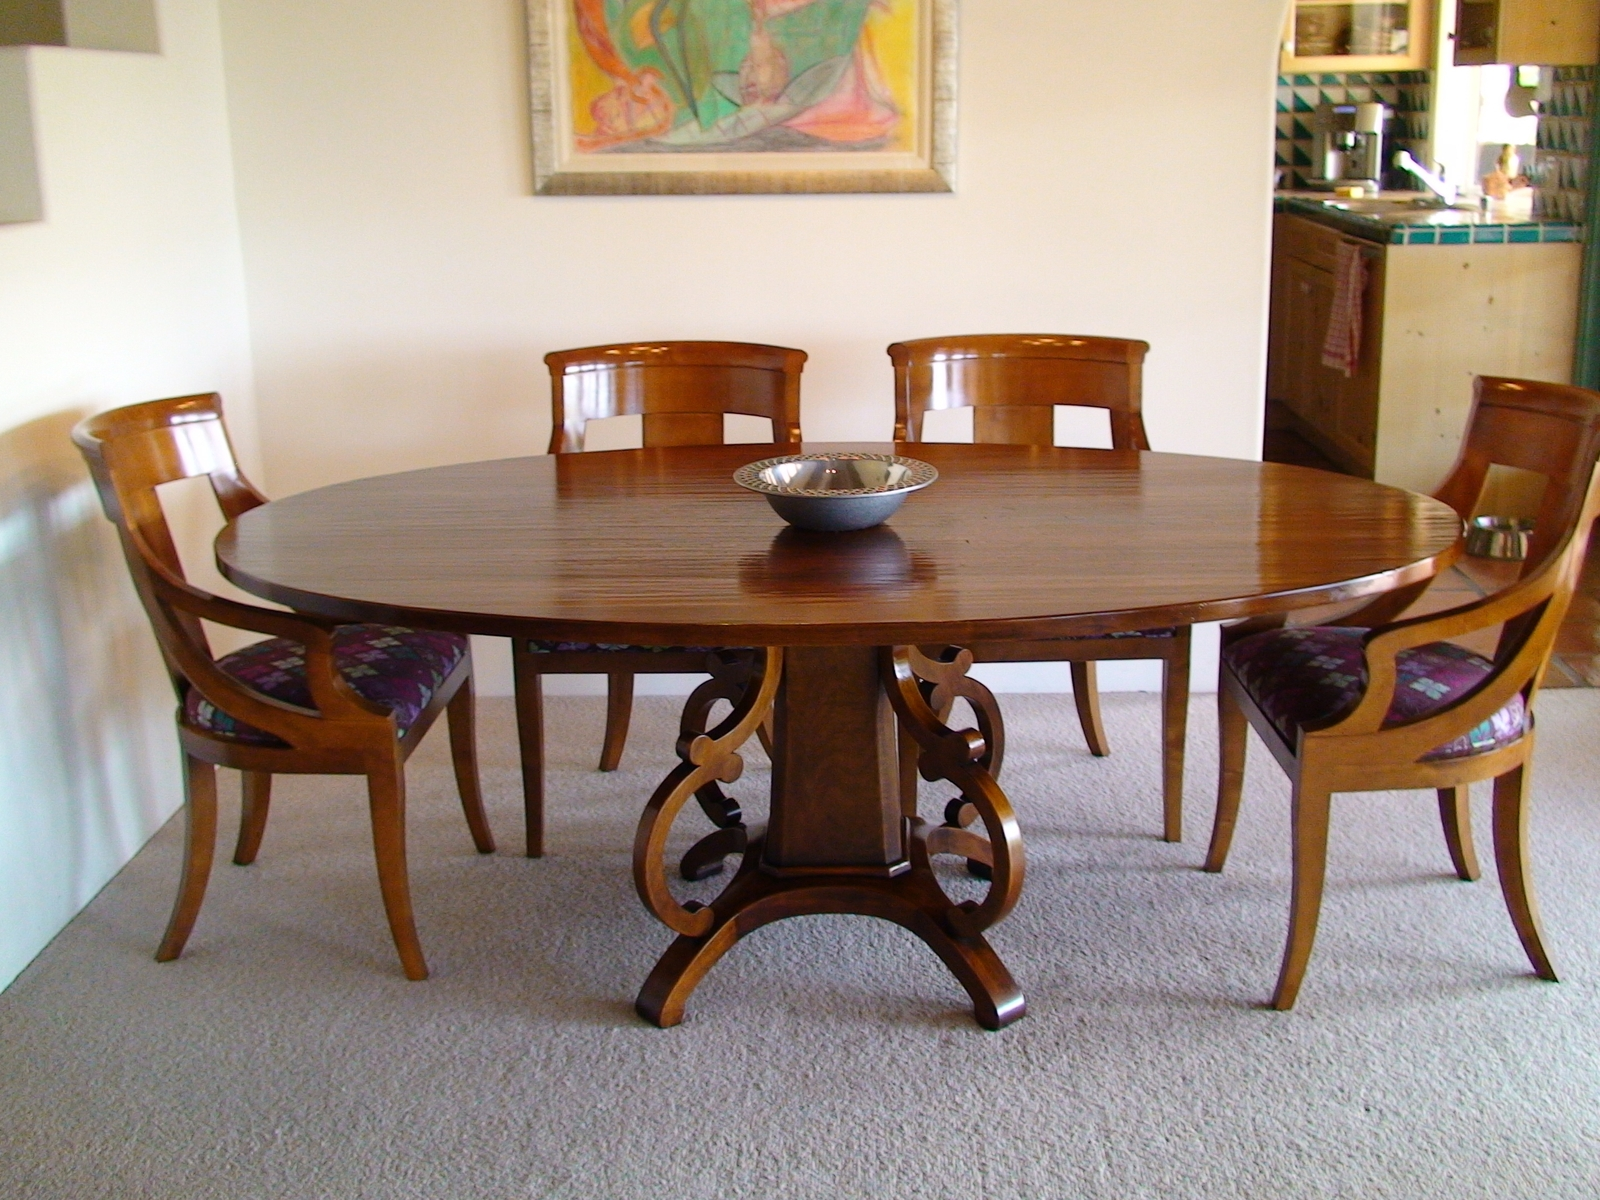 Wood dining table designs full hd pictures - Round dining table small space model ...